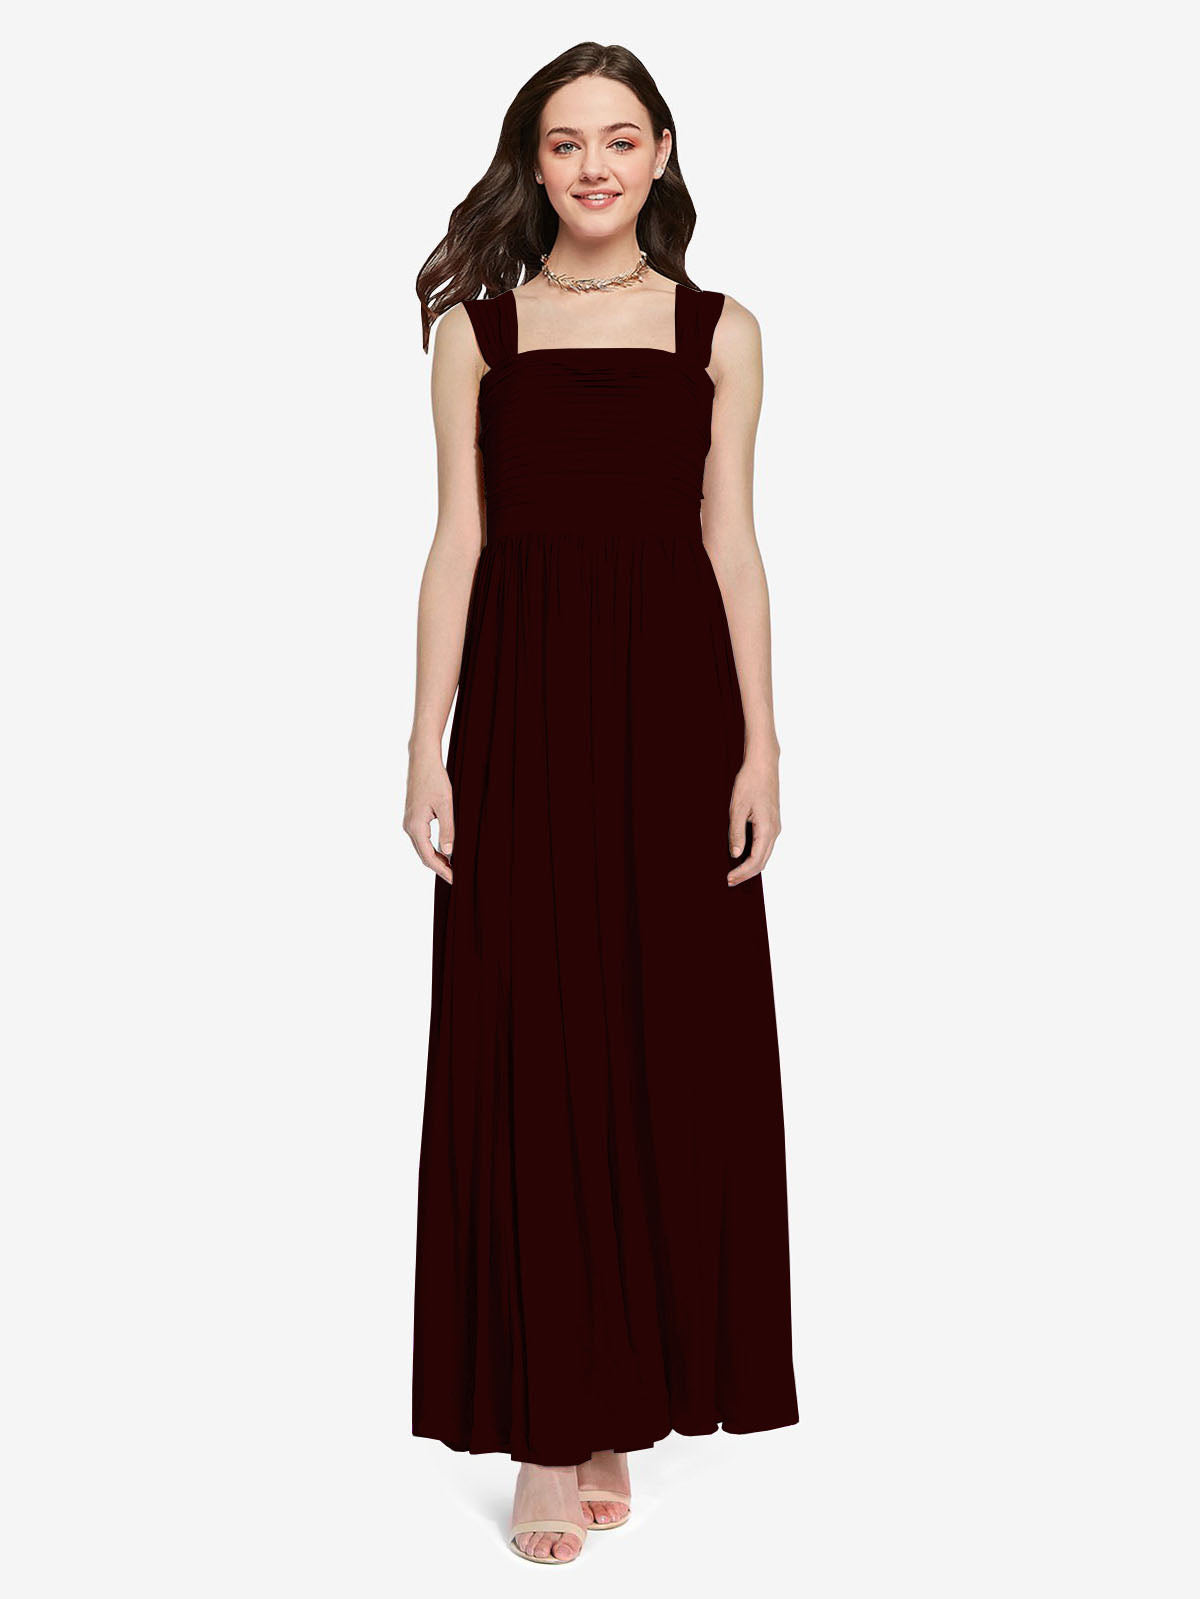 Long A-Line Square Sleeveless Burgundy Gold Chiffon Bridesmaid Dress Aldridge